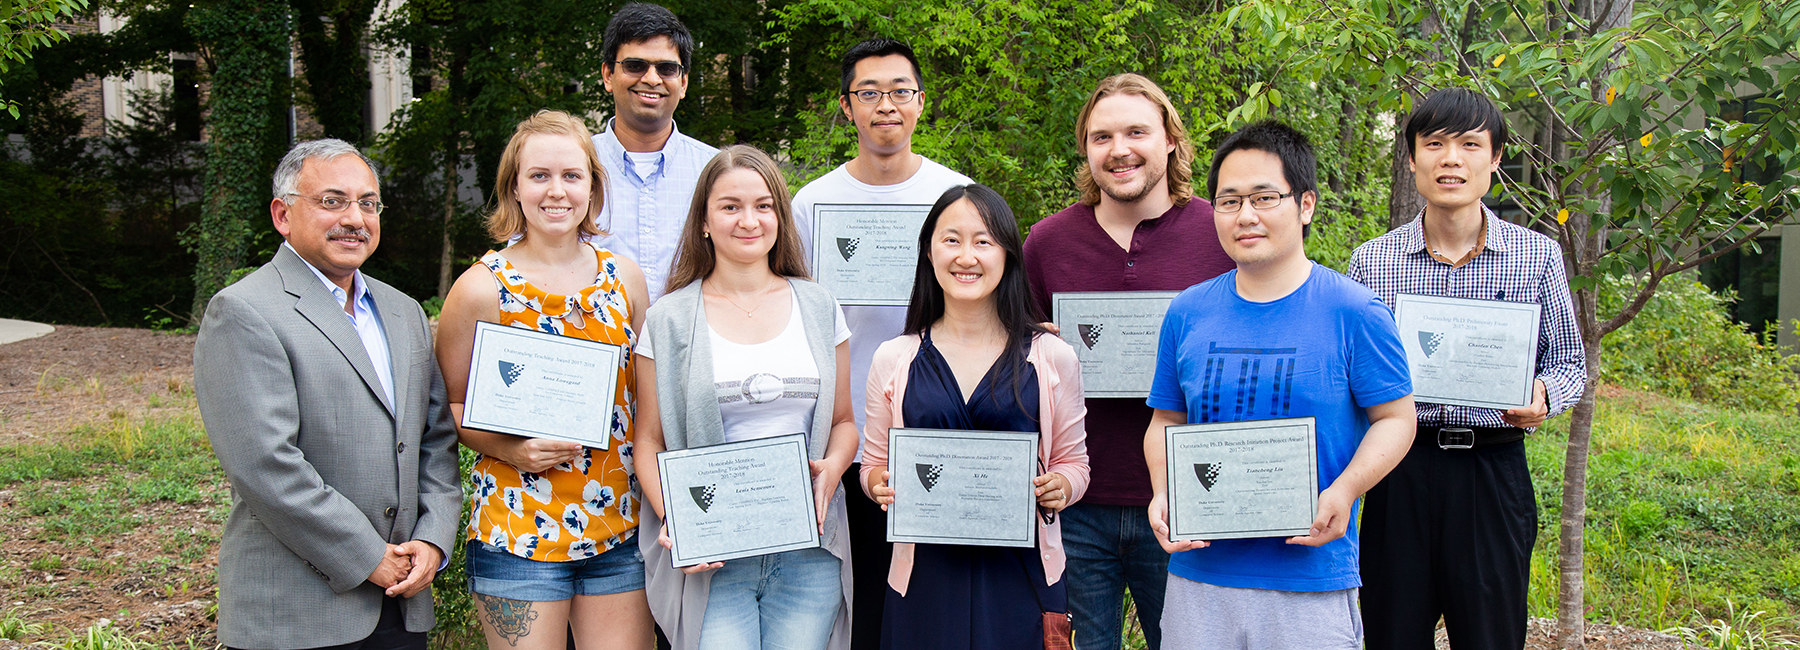 Recipients of grad student awards 2017-18